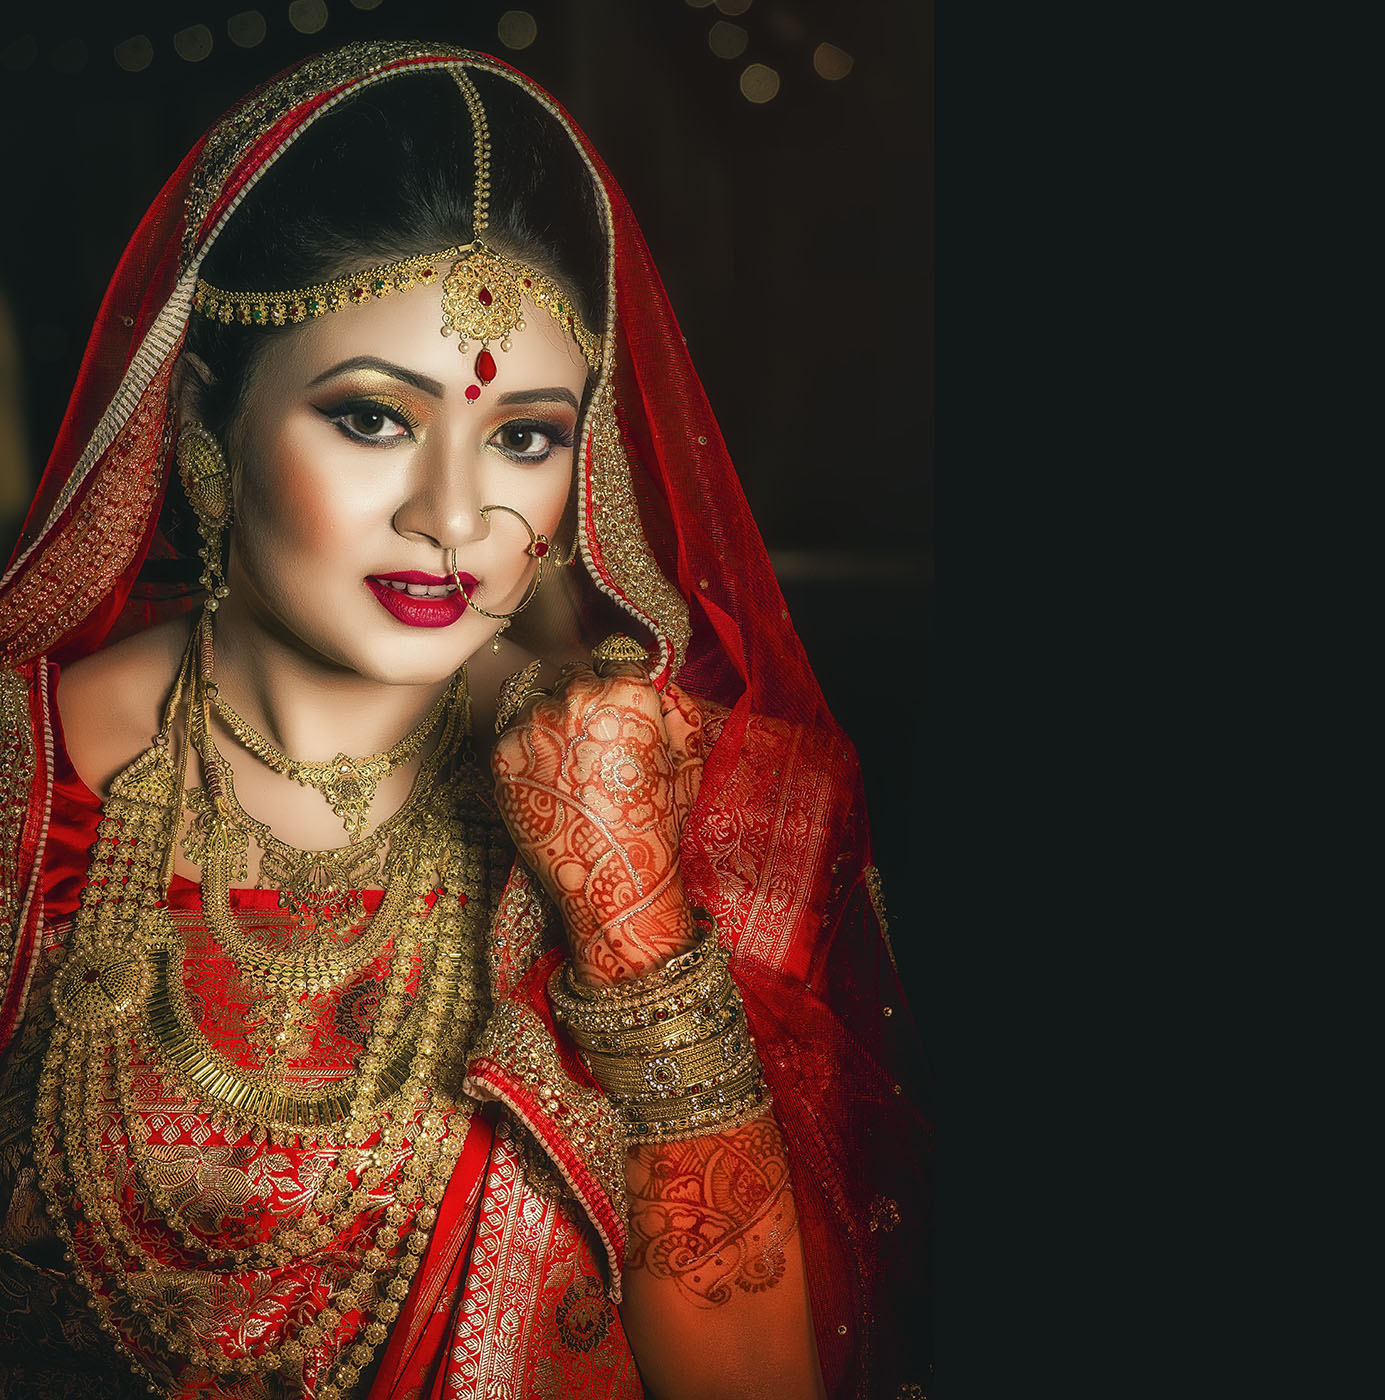 Indian Bride: The Significance Of Colour Red And Indian Brides